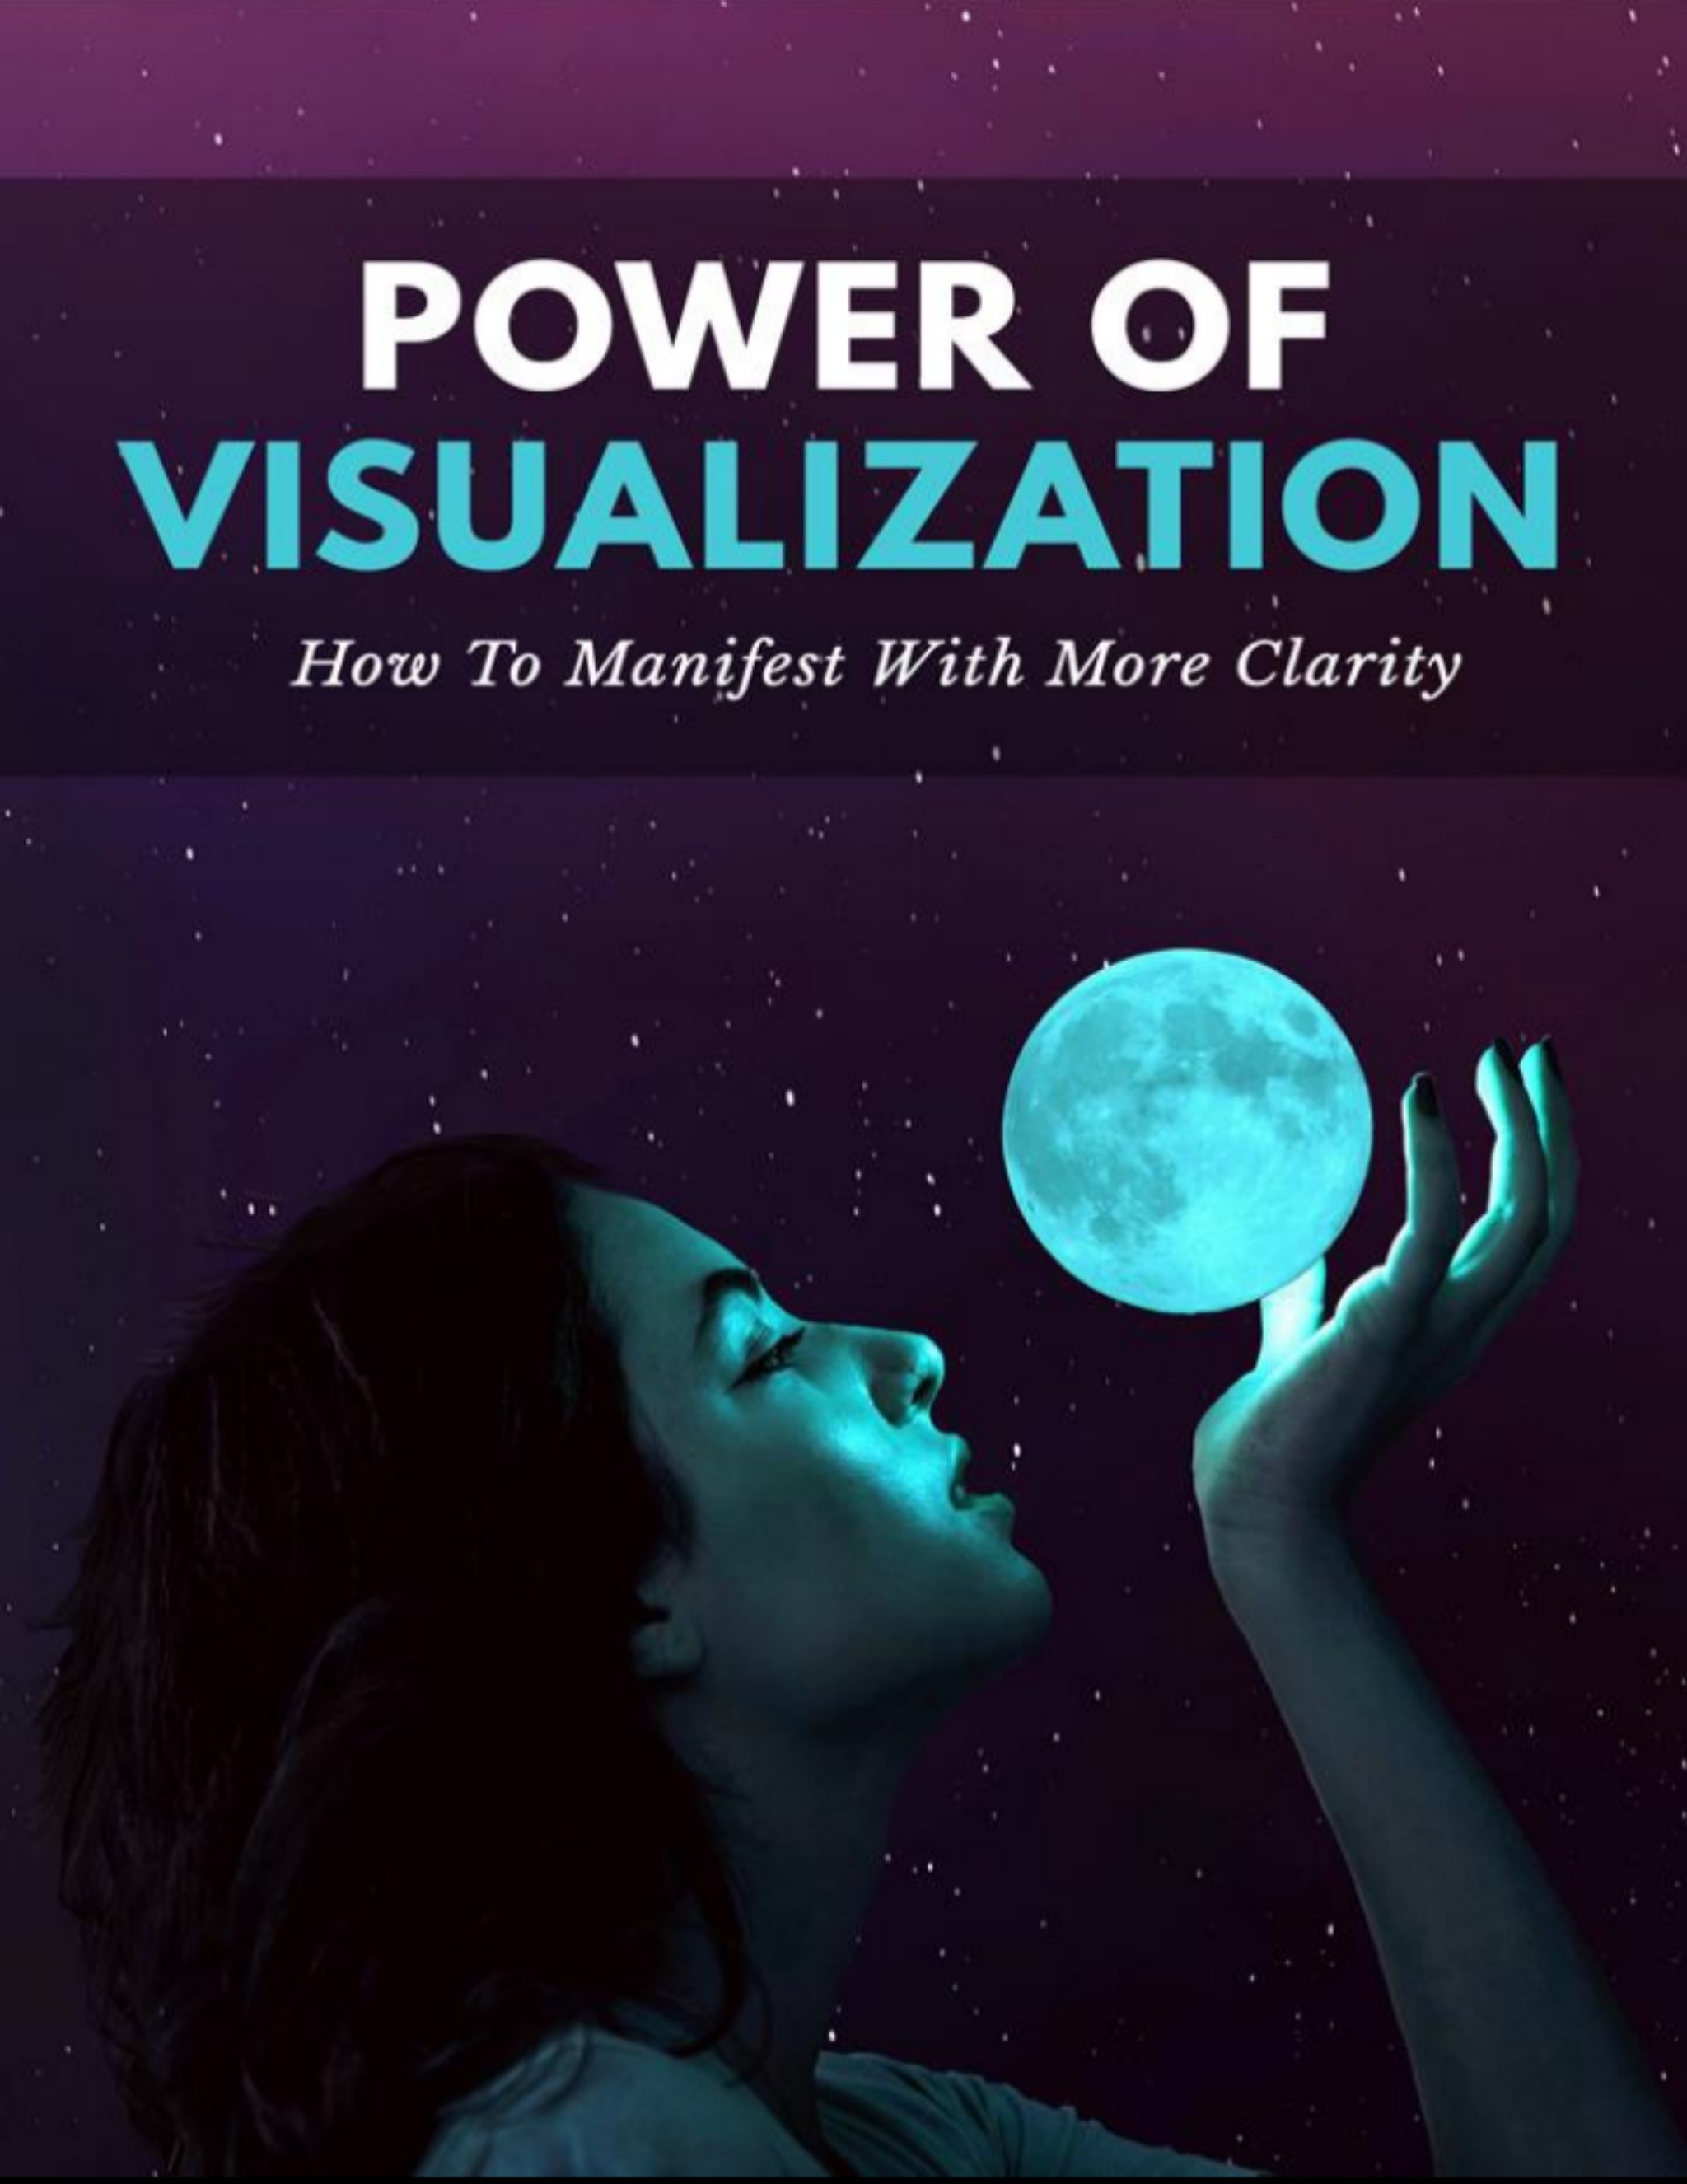 POWER OF VISUALIZATION